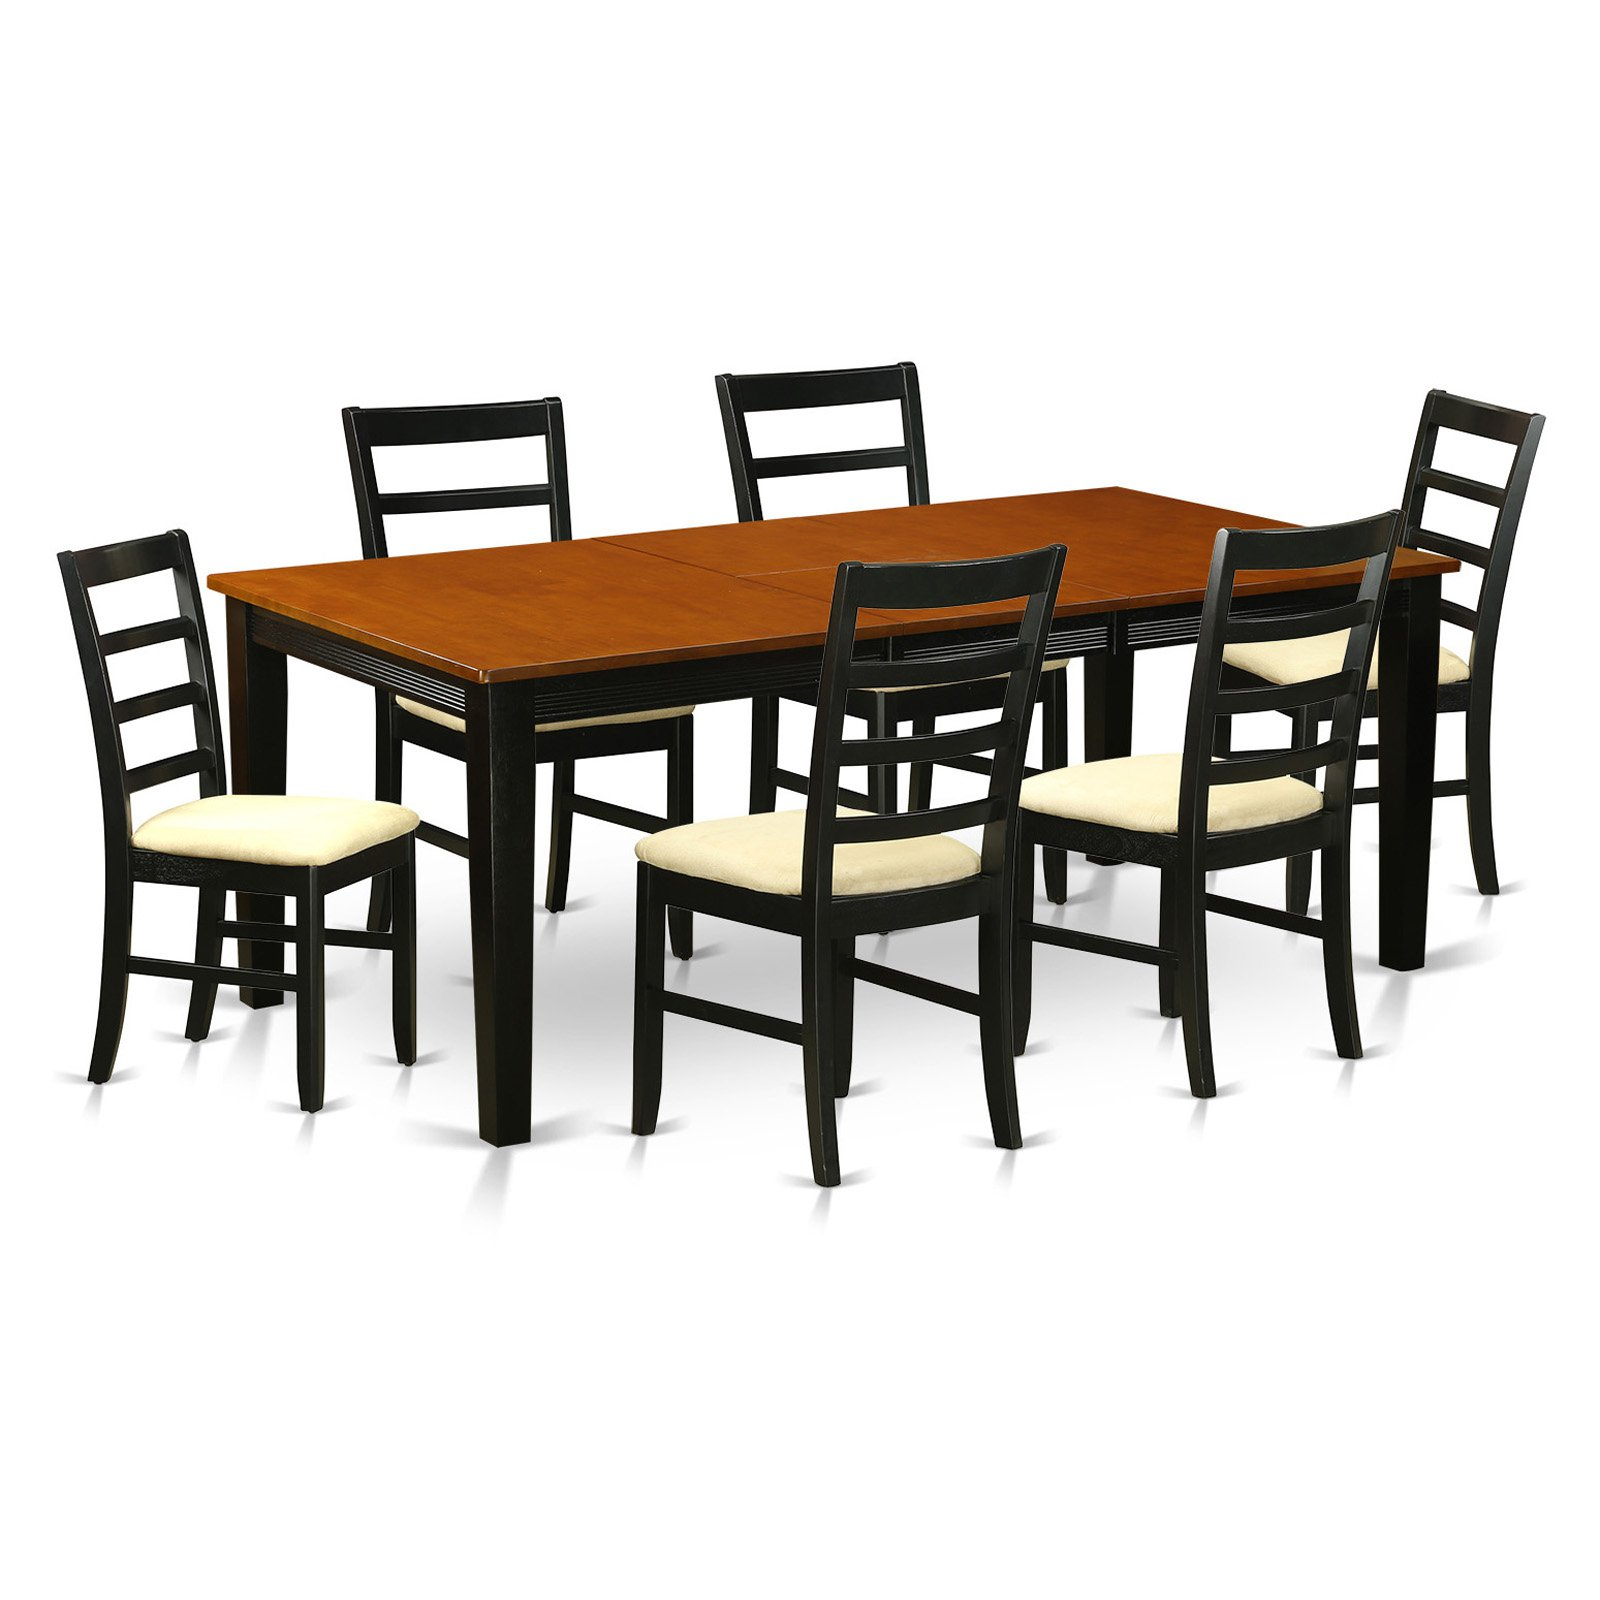 East West Furniture Quincy 7-Piece Shaker Dining Table Set